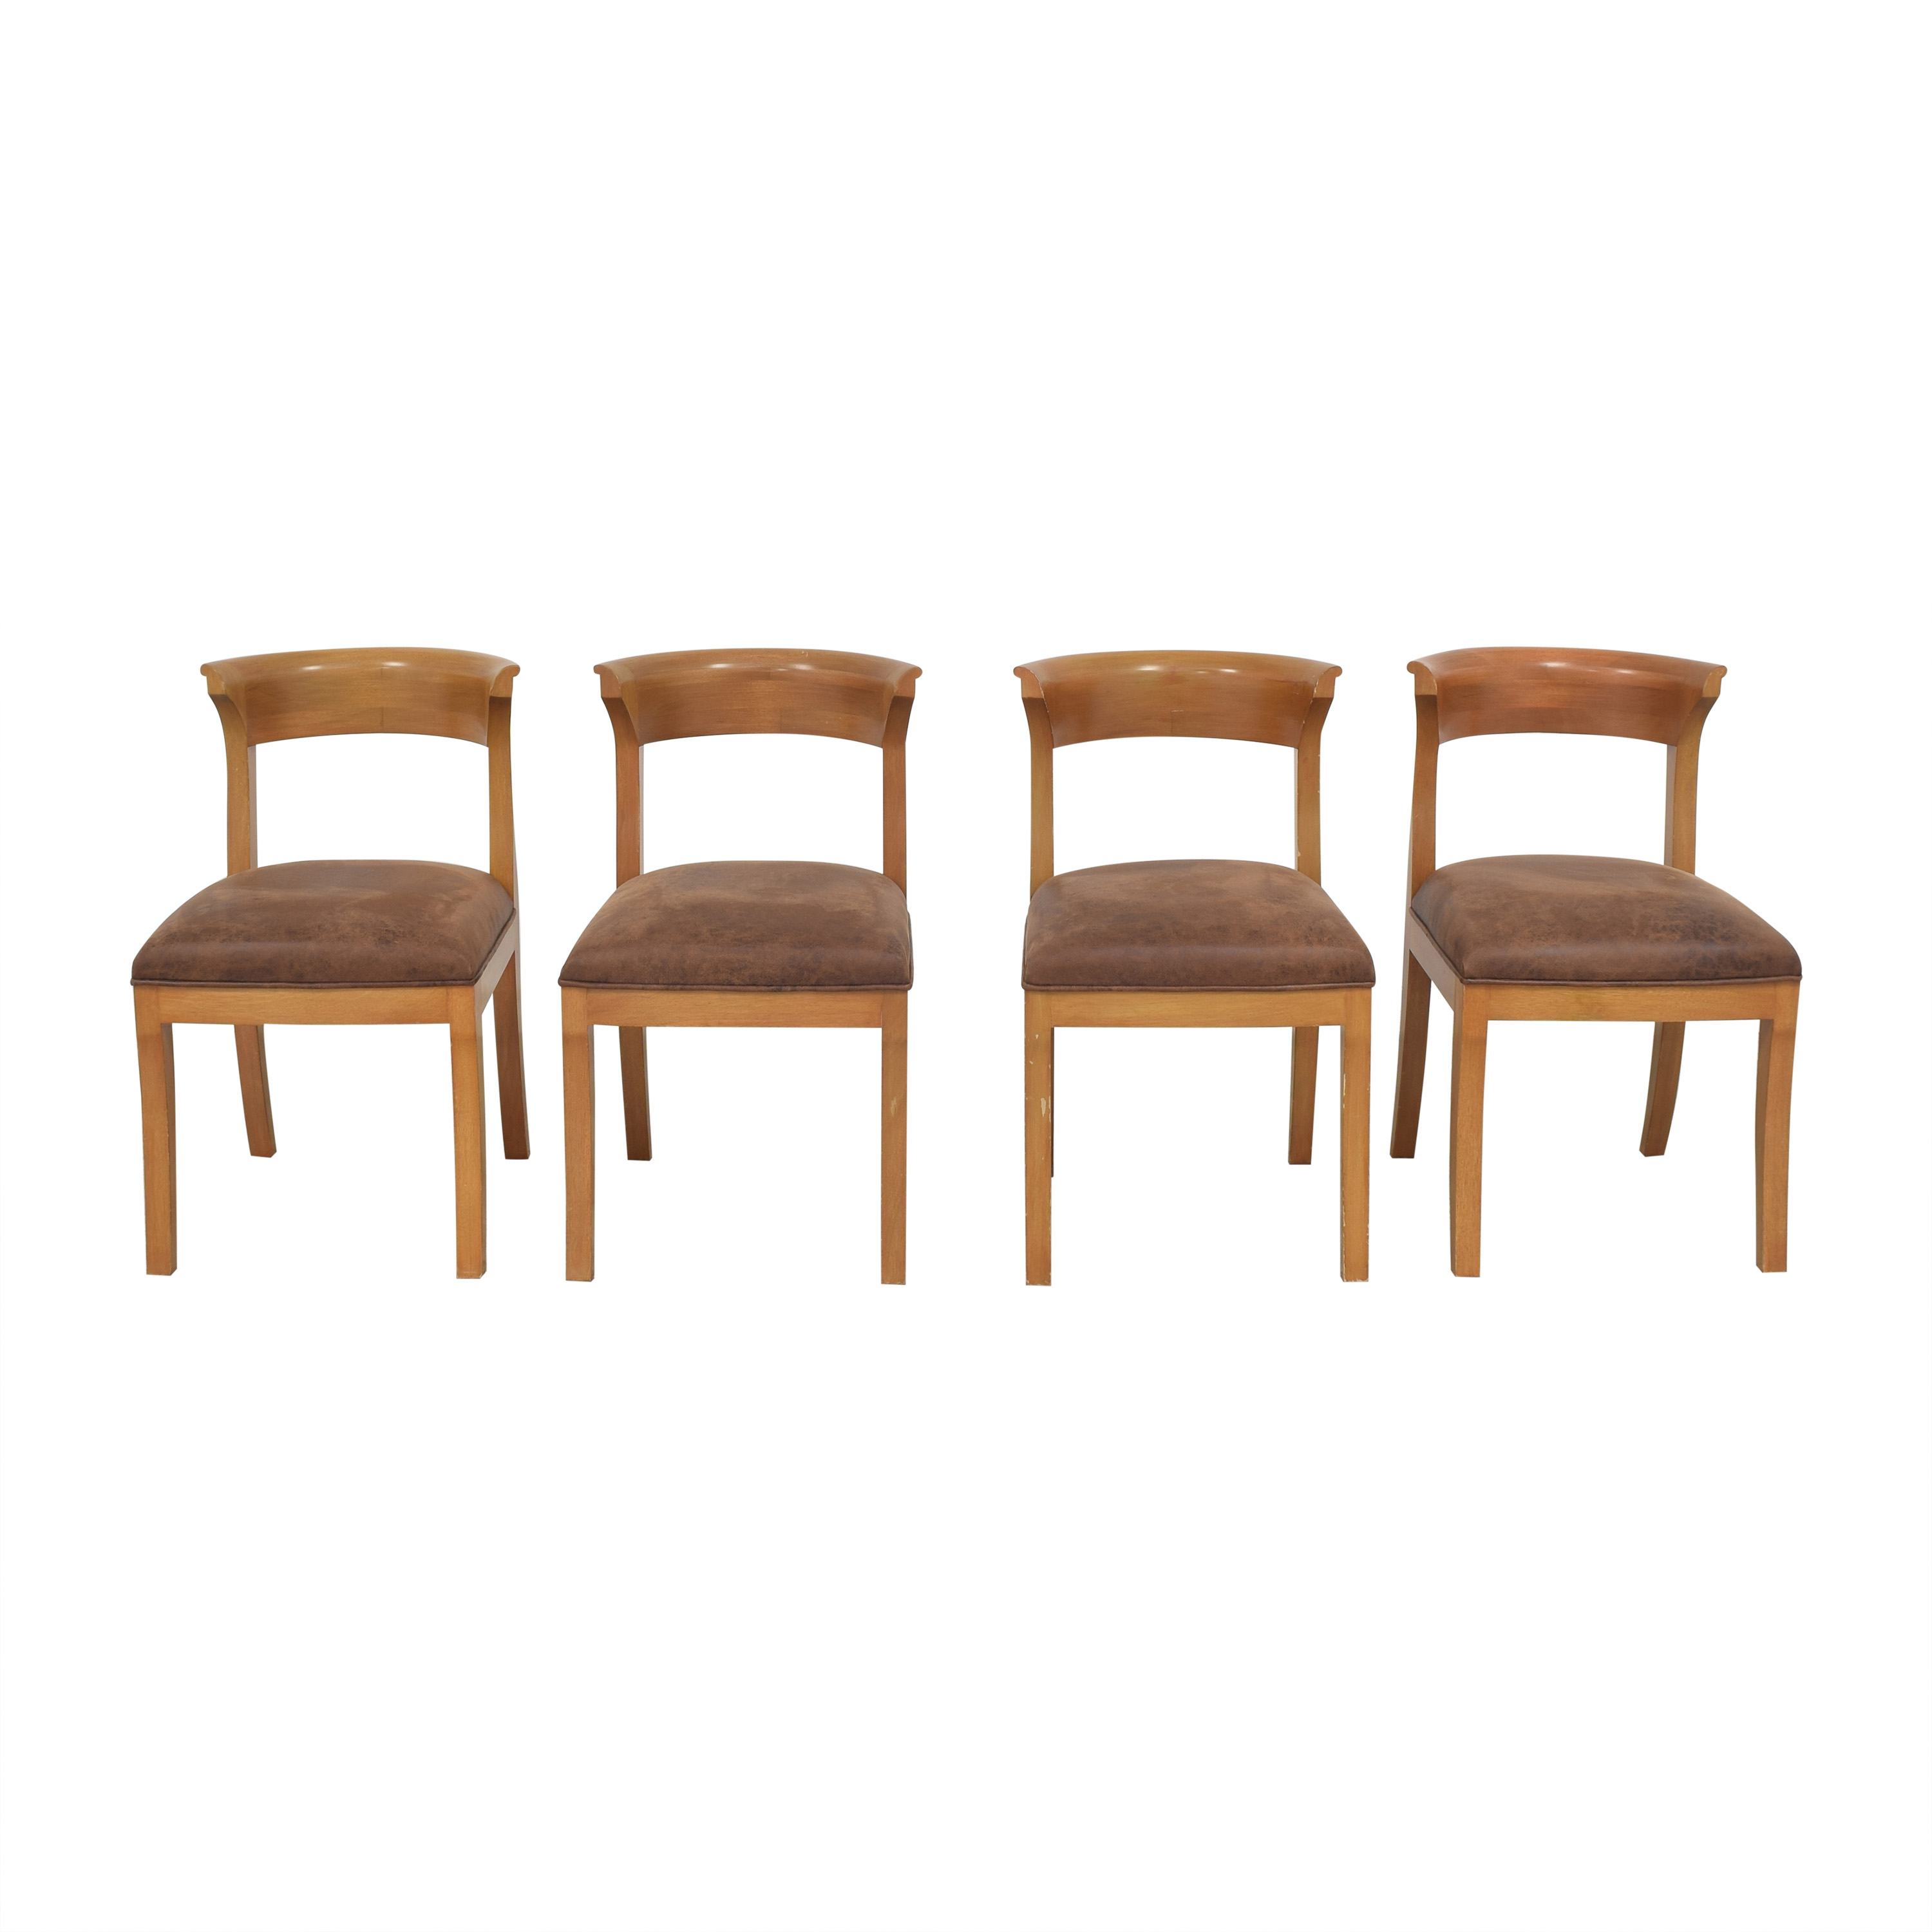 Bernhardt Dining Chairs / Chairs